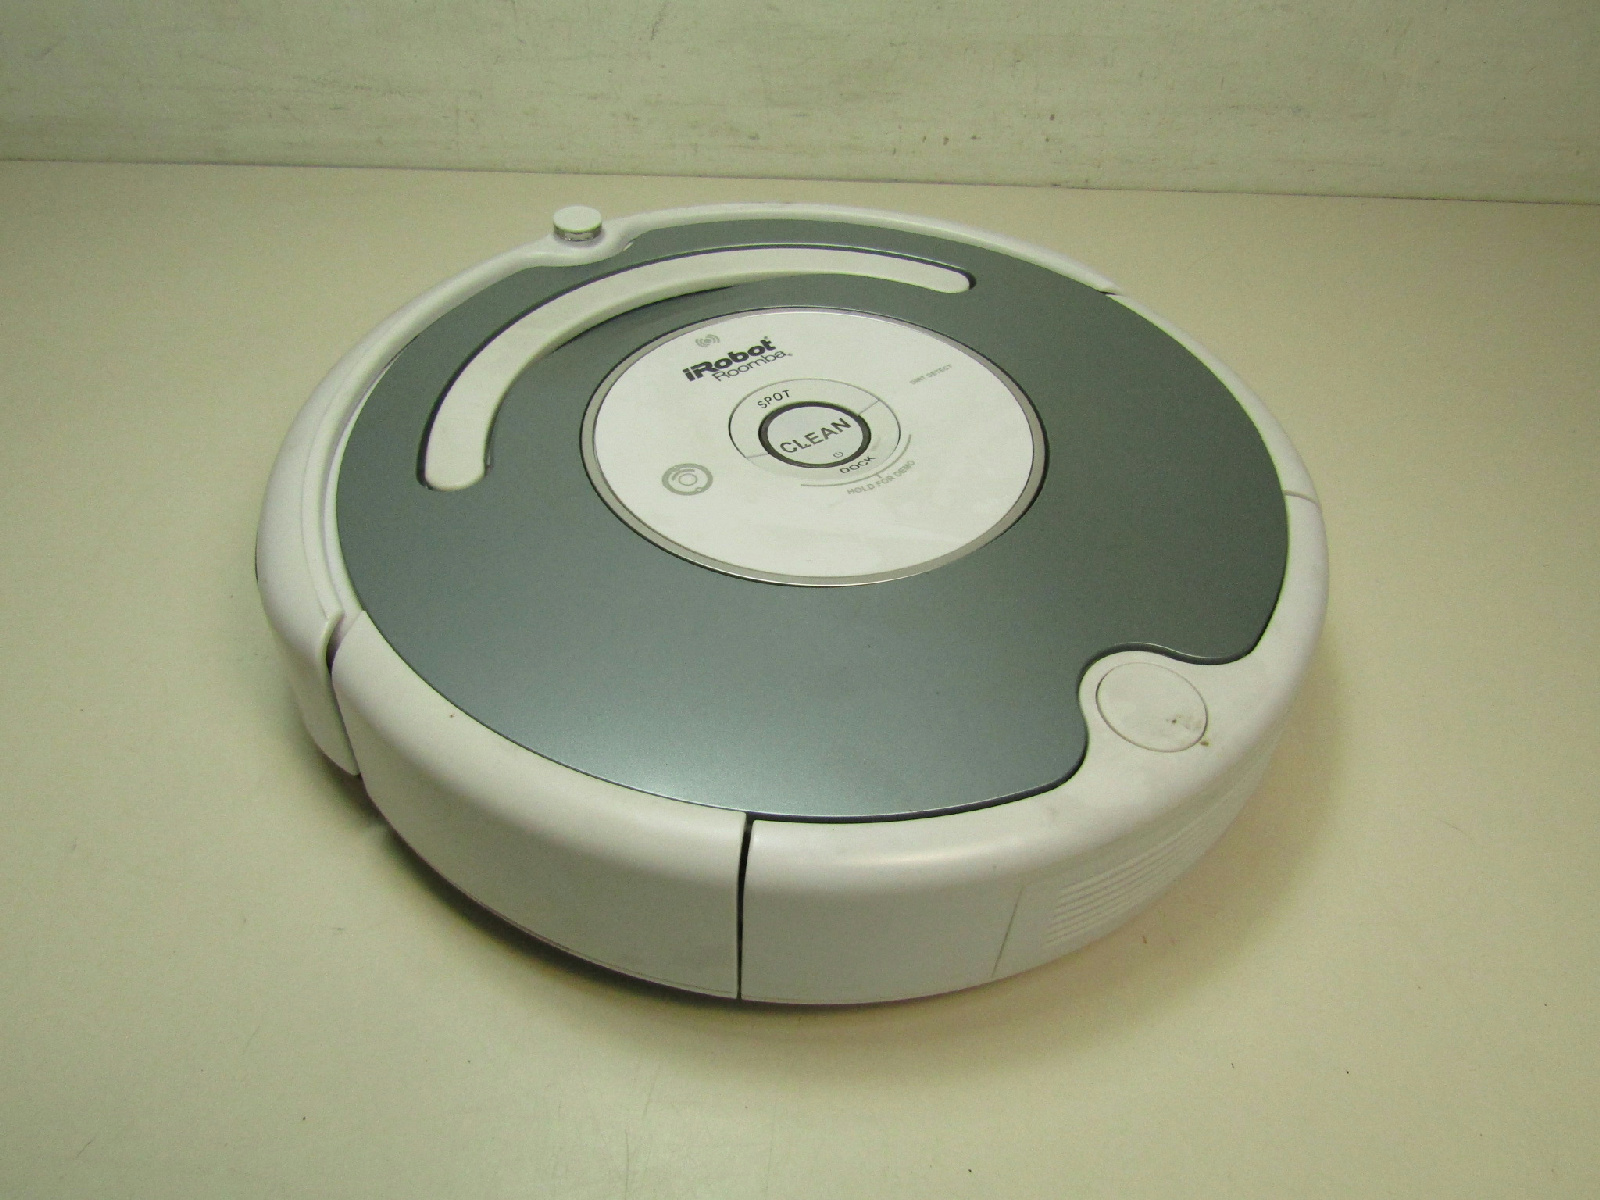 irobot roomba model 665 vacuum cleaning robot unit only untested as is ebay. Black Bedroom Furniture Sets. Home Design Ideas